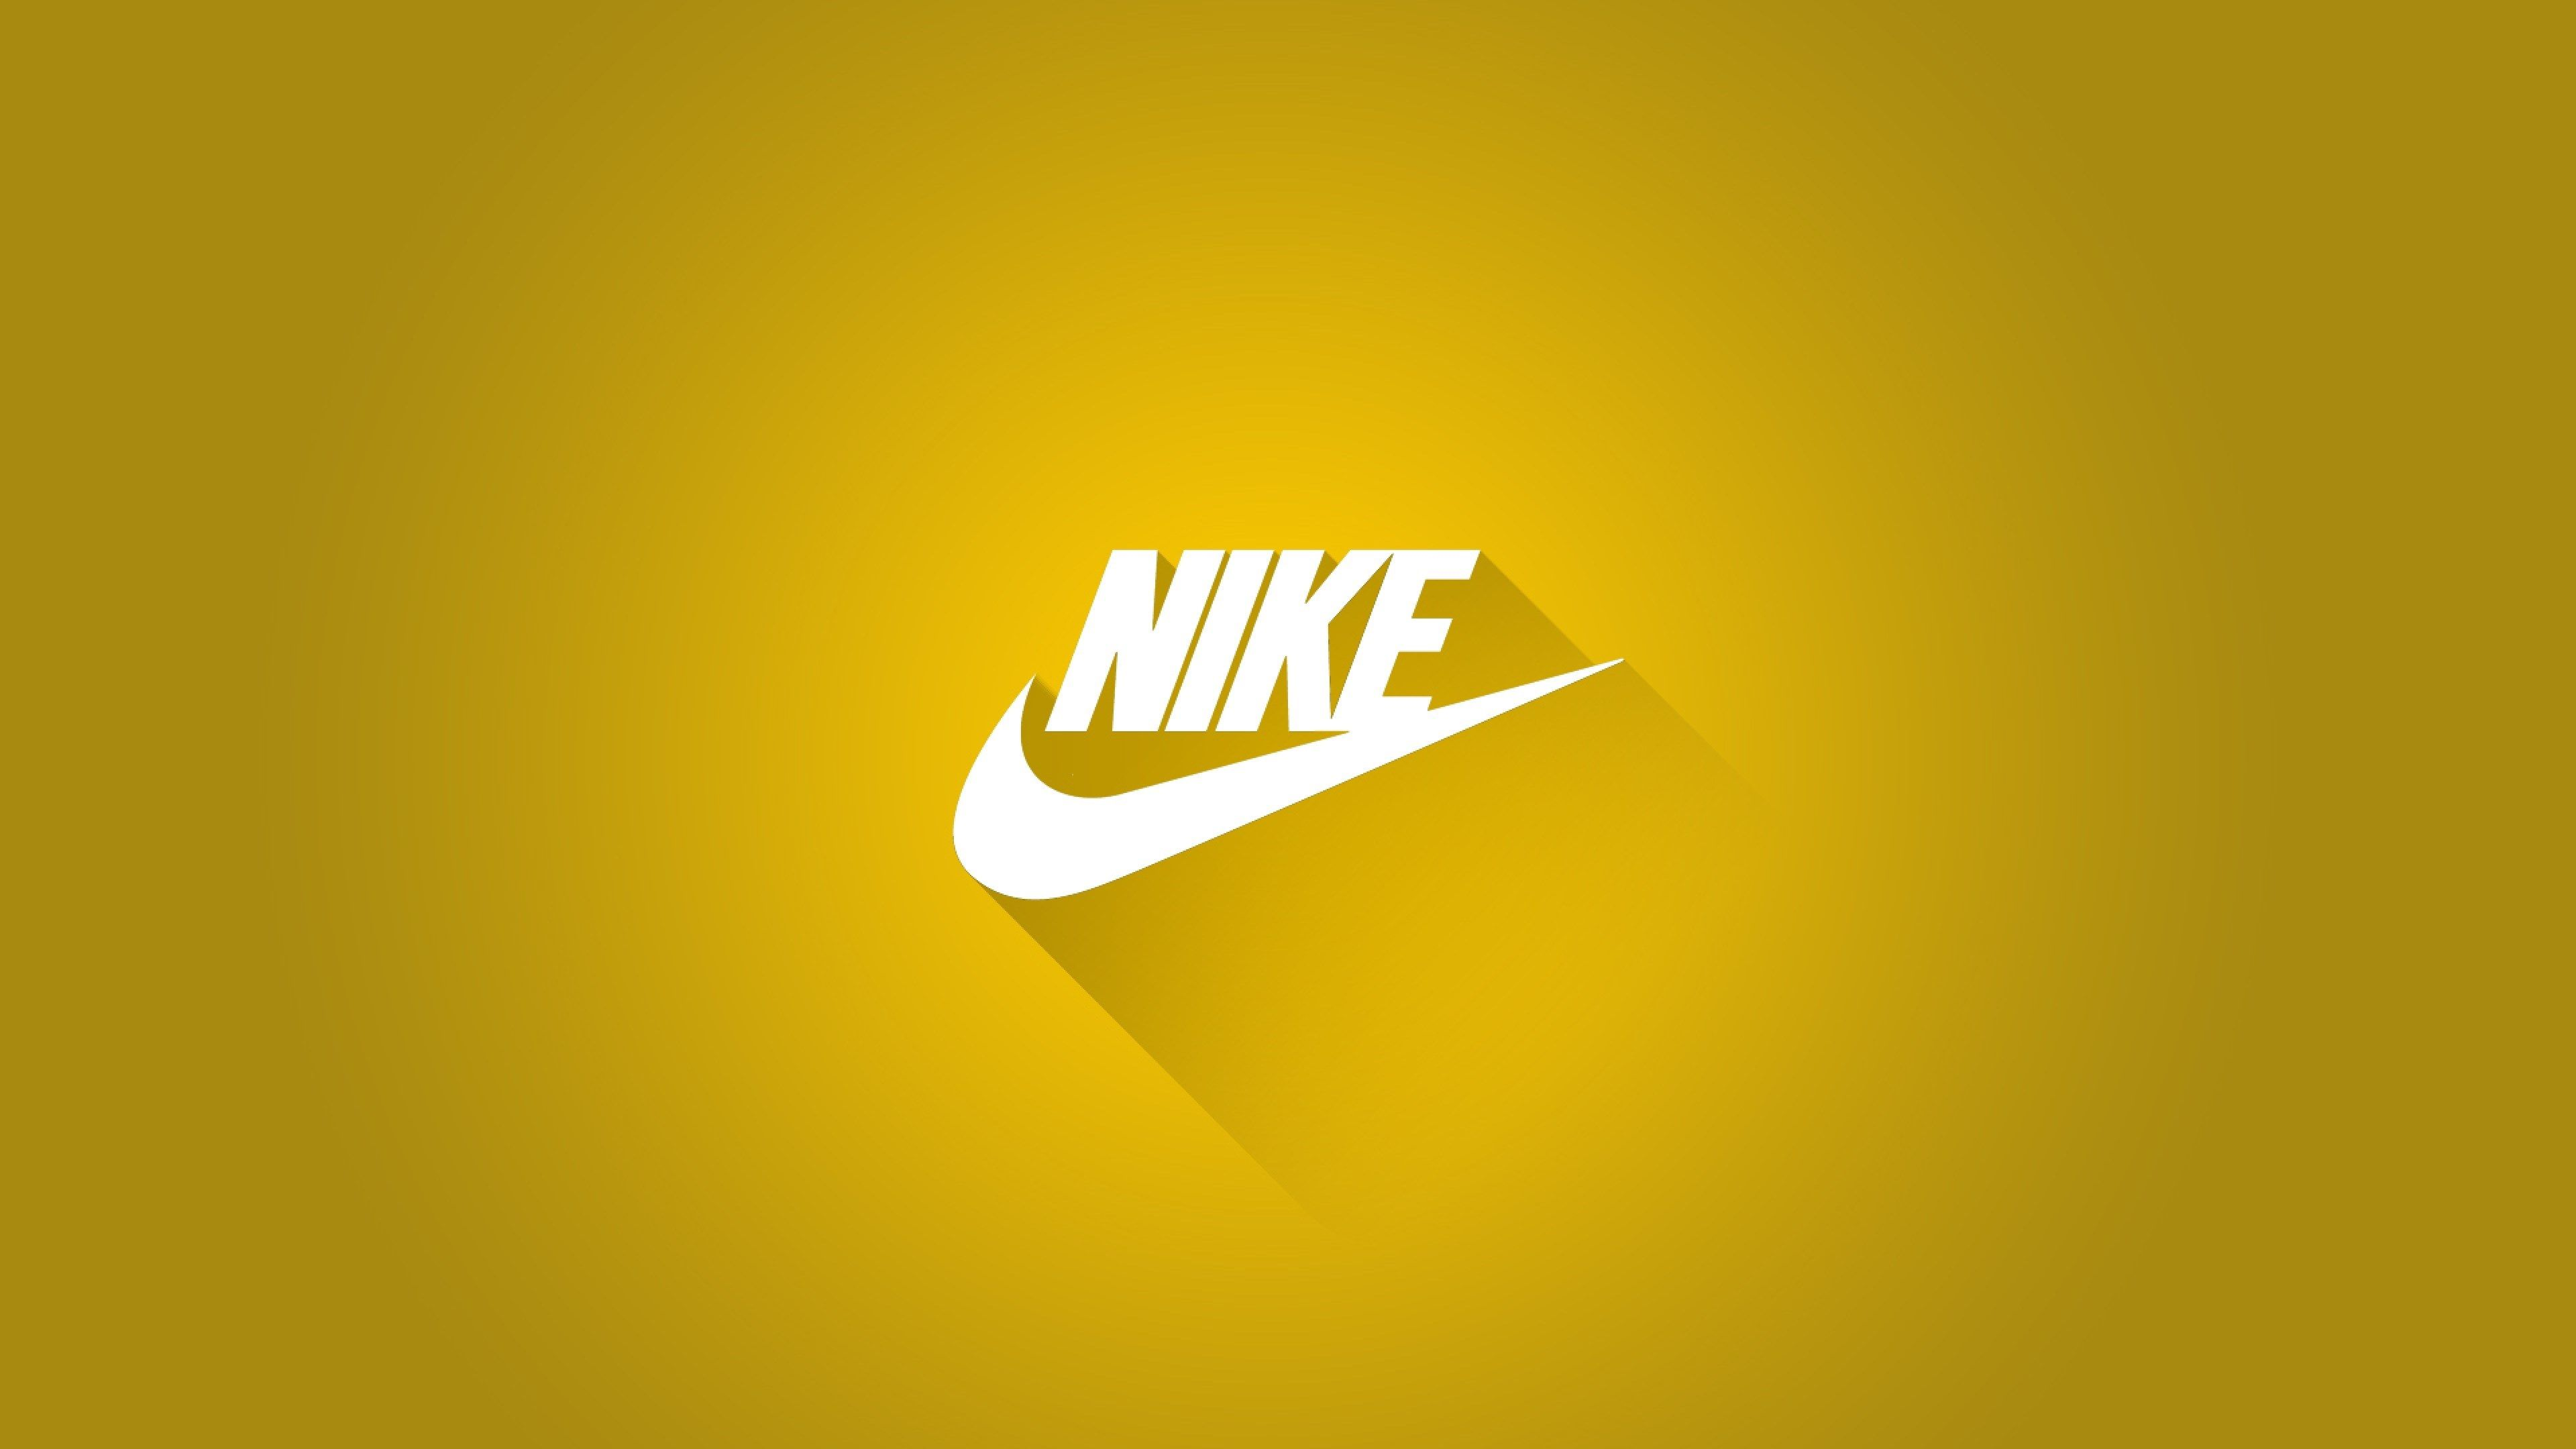 3840x2160 nike 4k wallpaper free download for pc